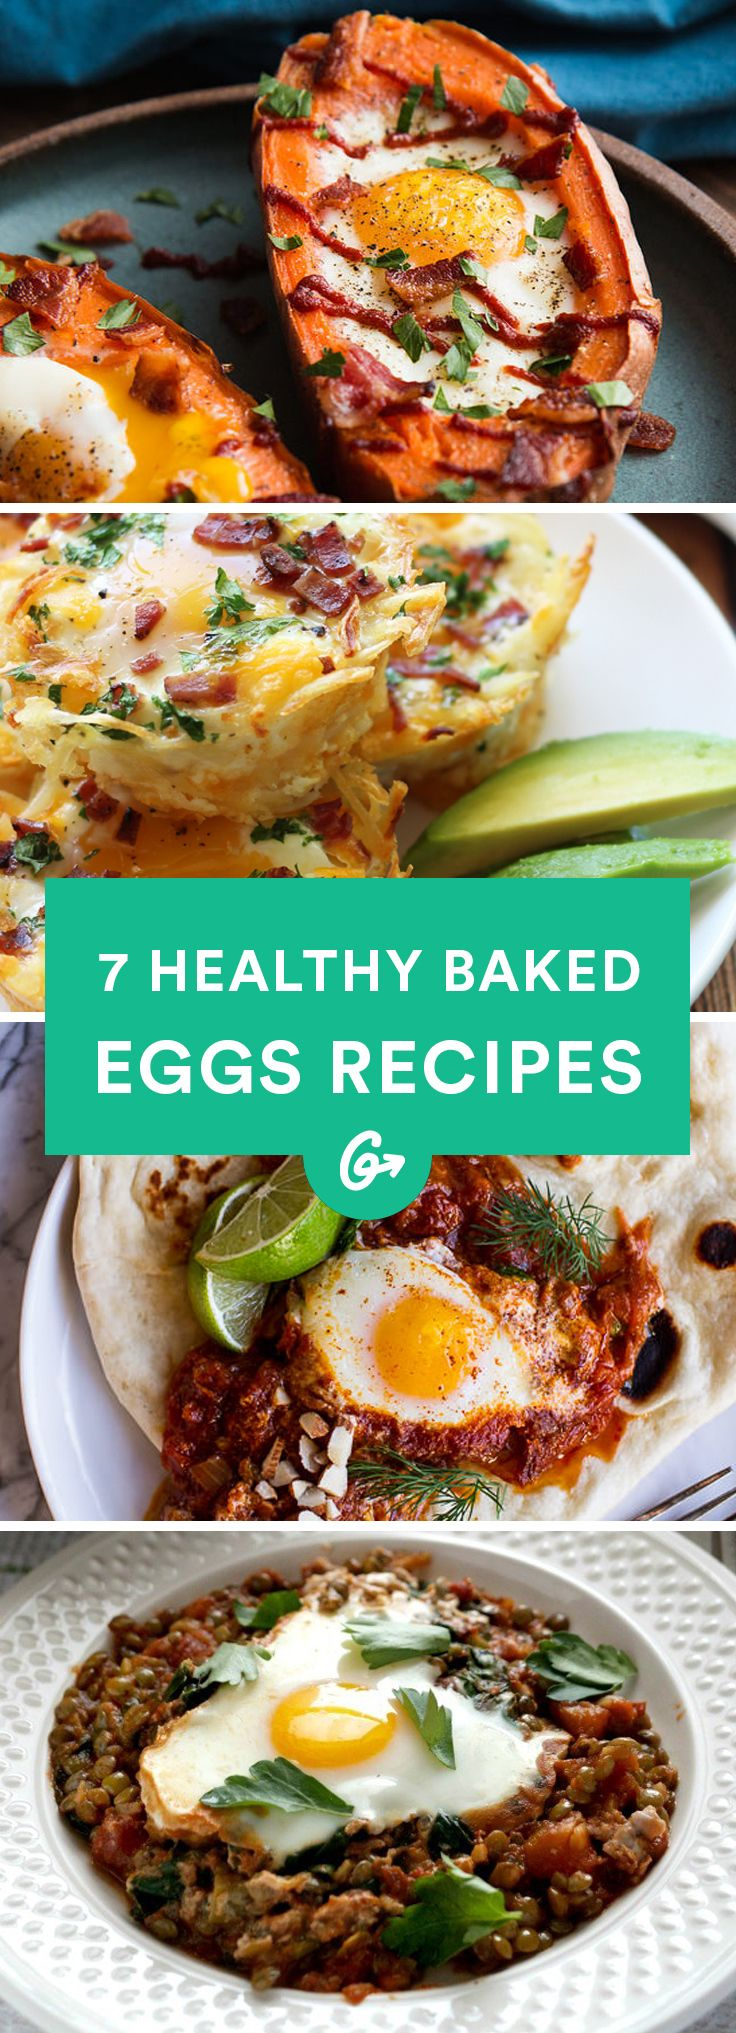 These recipes pack in protein, vegetables, and tons of flavor. #bakedeggs #recipes http://greatist.com/eat/baked-eggs-recipes-you-can-eat-any-time-of-day